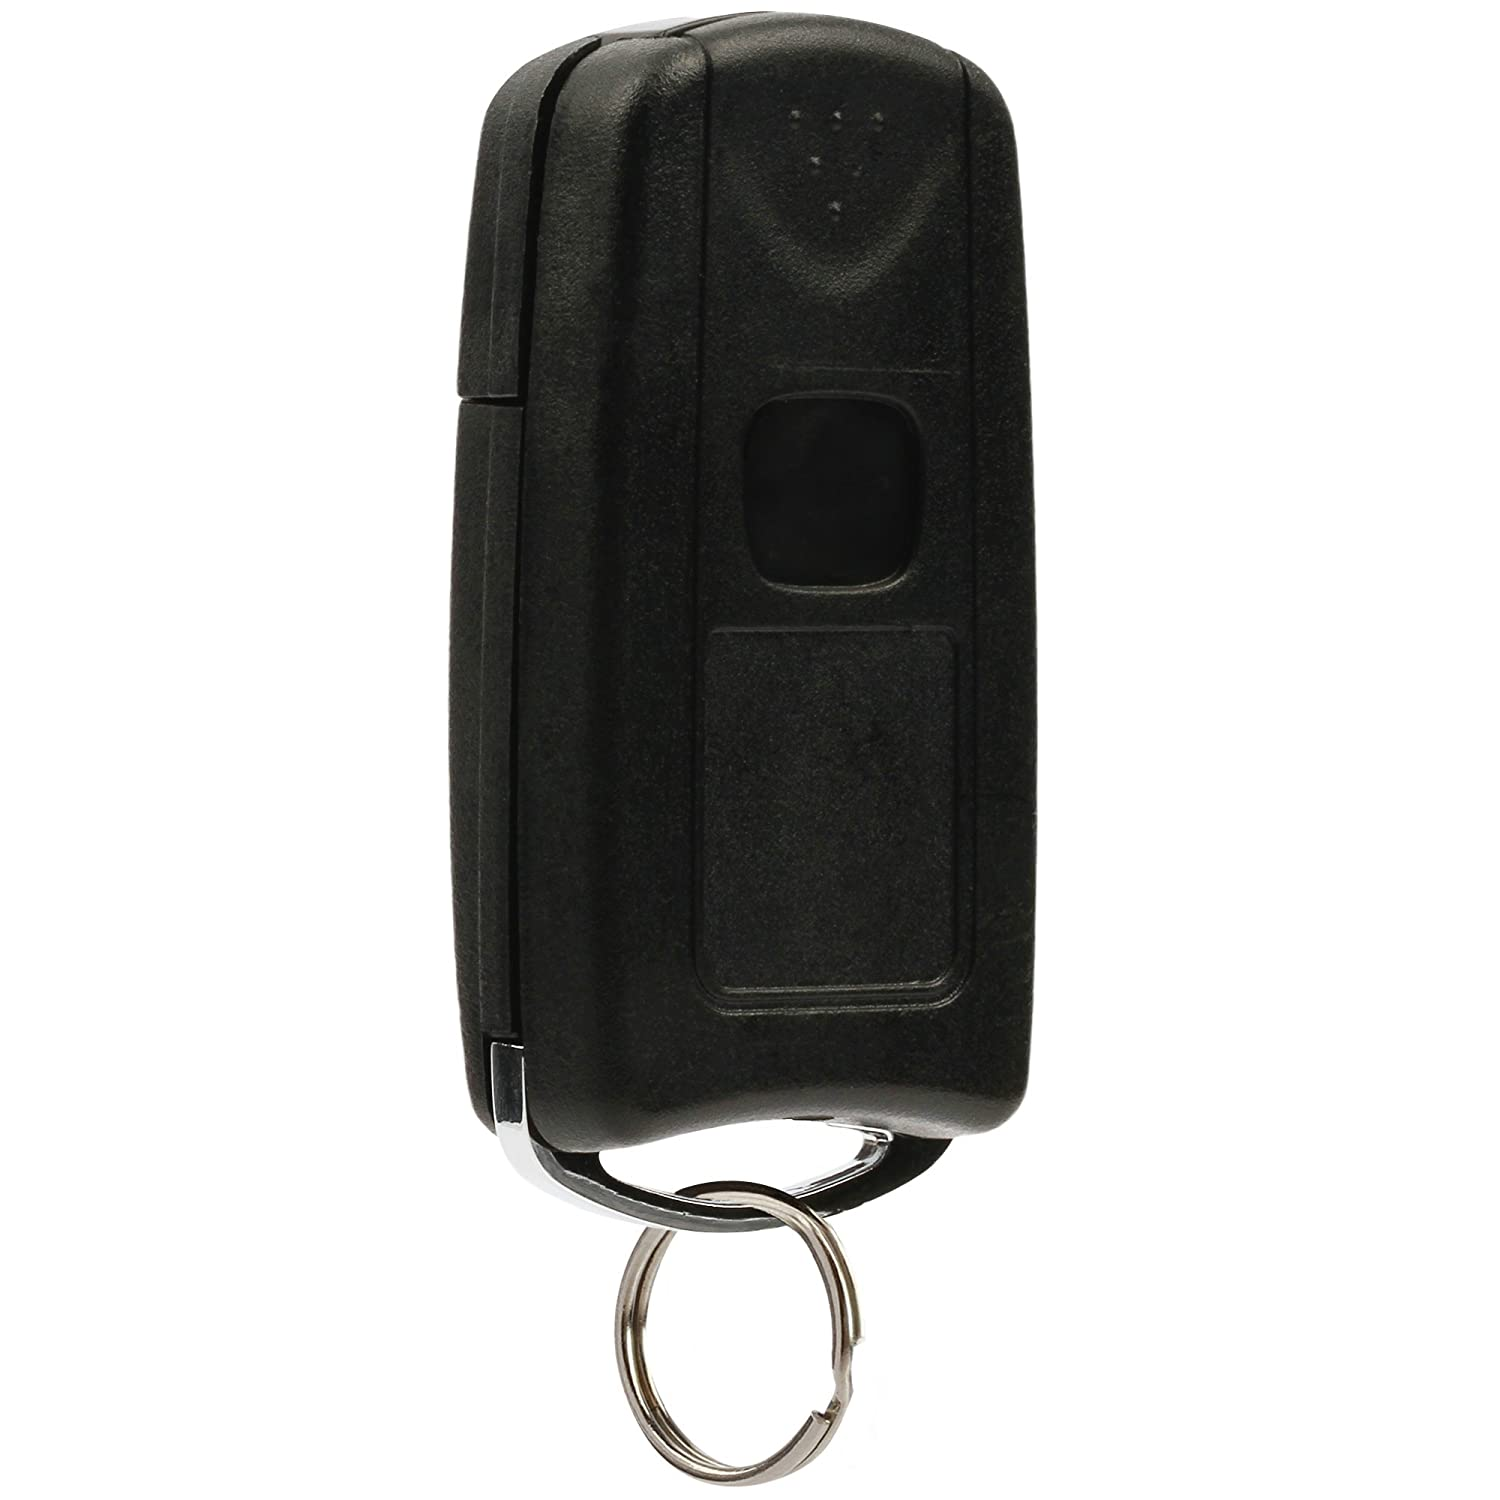 Car Key Fob Keyless Entry Flip Remote fits 2007-2013 Acura MDX RDX N5F0602A1A